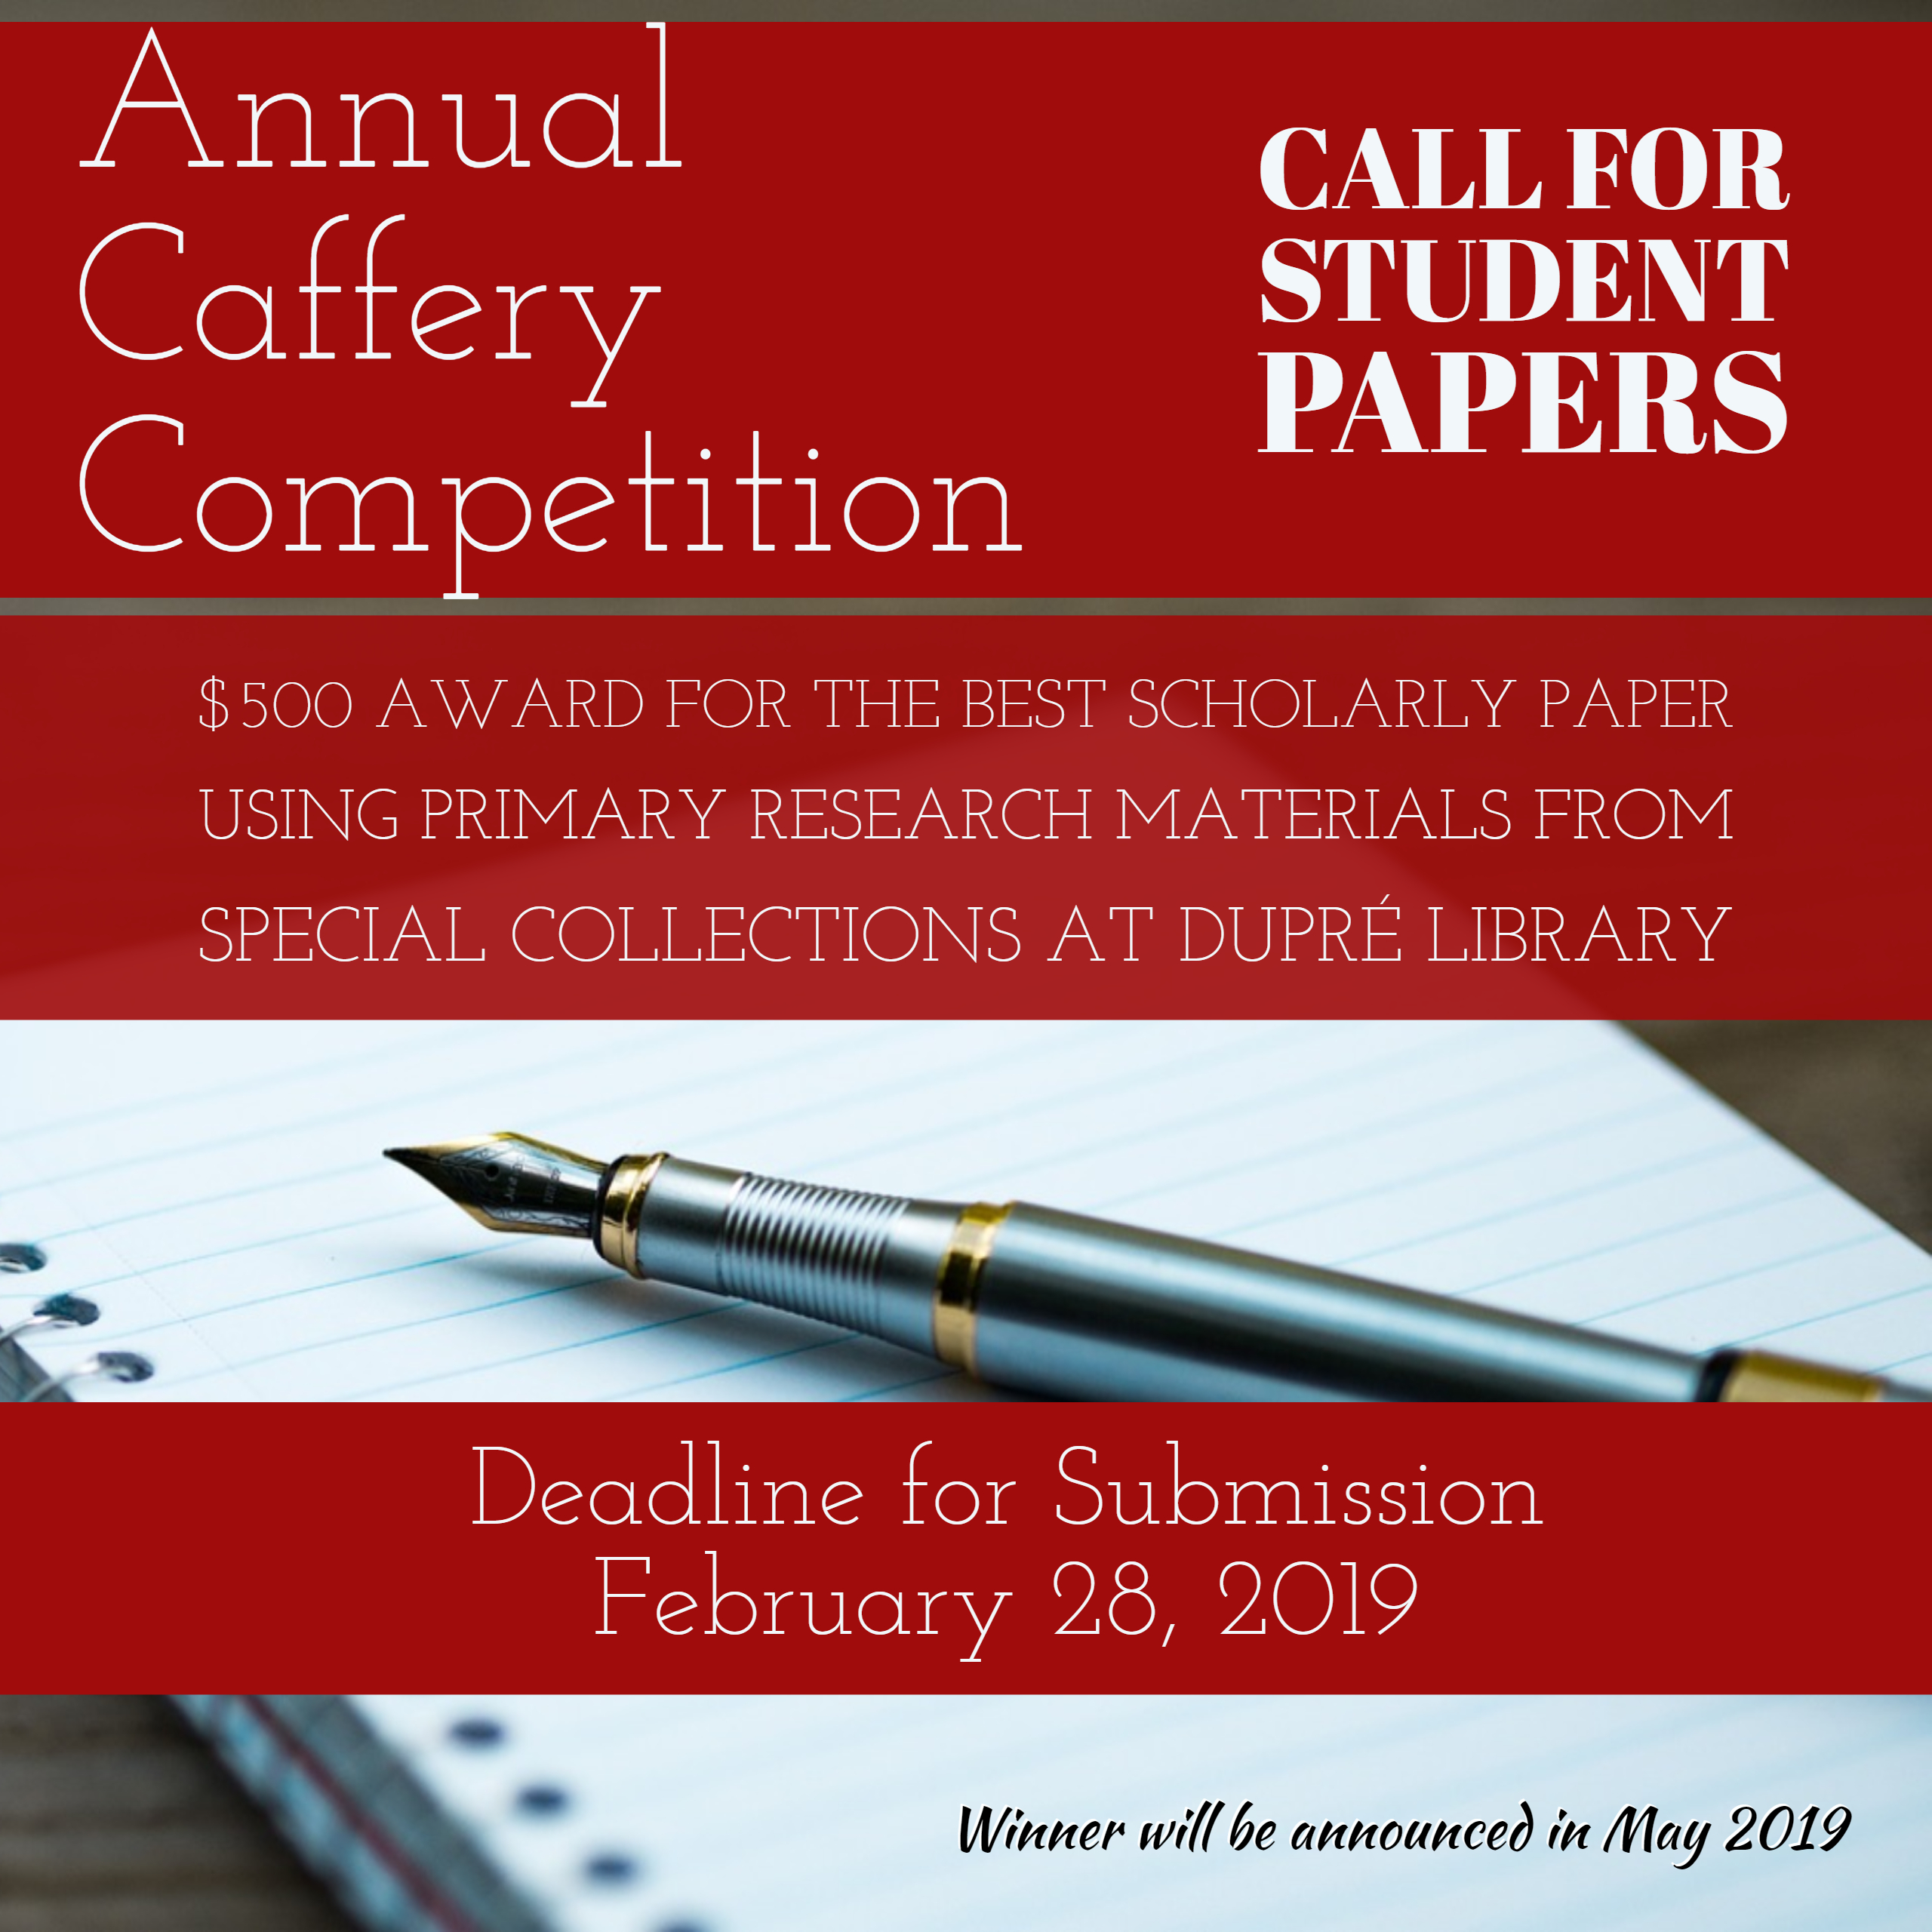 Annual Caffery Competition - Call for Student Papers  $500 award for the best scholarly paper using primary research materials from the special collections at Dupré Library  Deadlines for Submission Fall Semester - November 10, 2017 Spring Semester - April 13, 2018  Winner will be announced in May 2018.